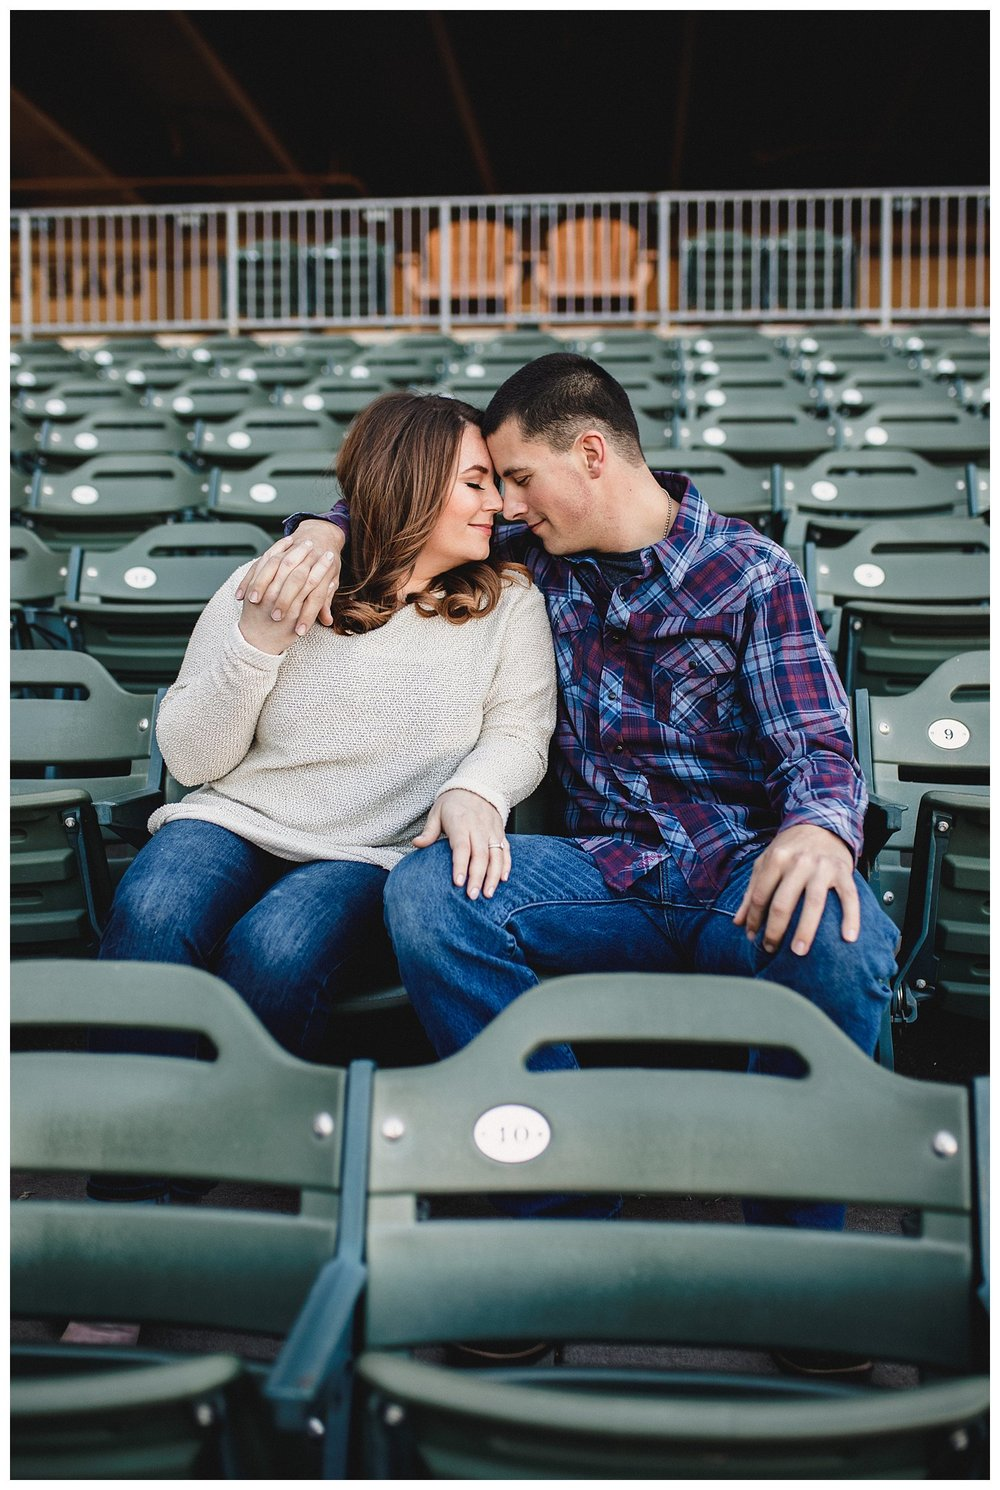 Kelsey_Diane_Photography_T-Bones_Stadium_Kansas_Wandering_Adventourus_Kansas_City_Engagement_0091.jpg